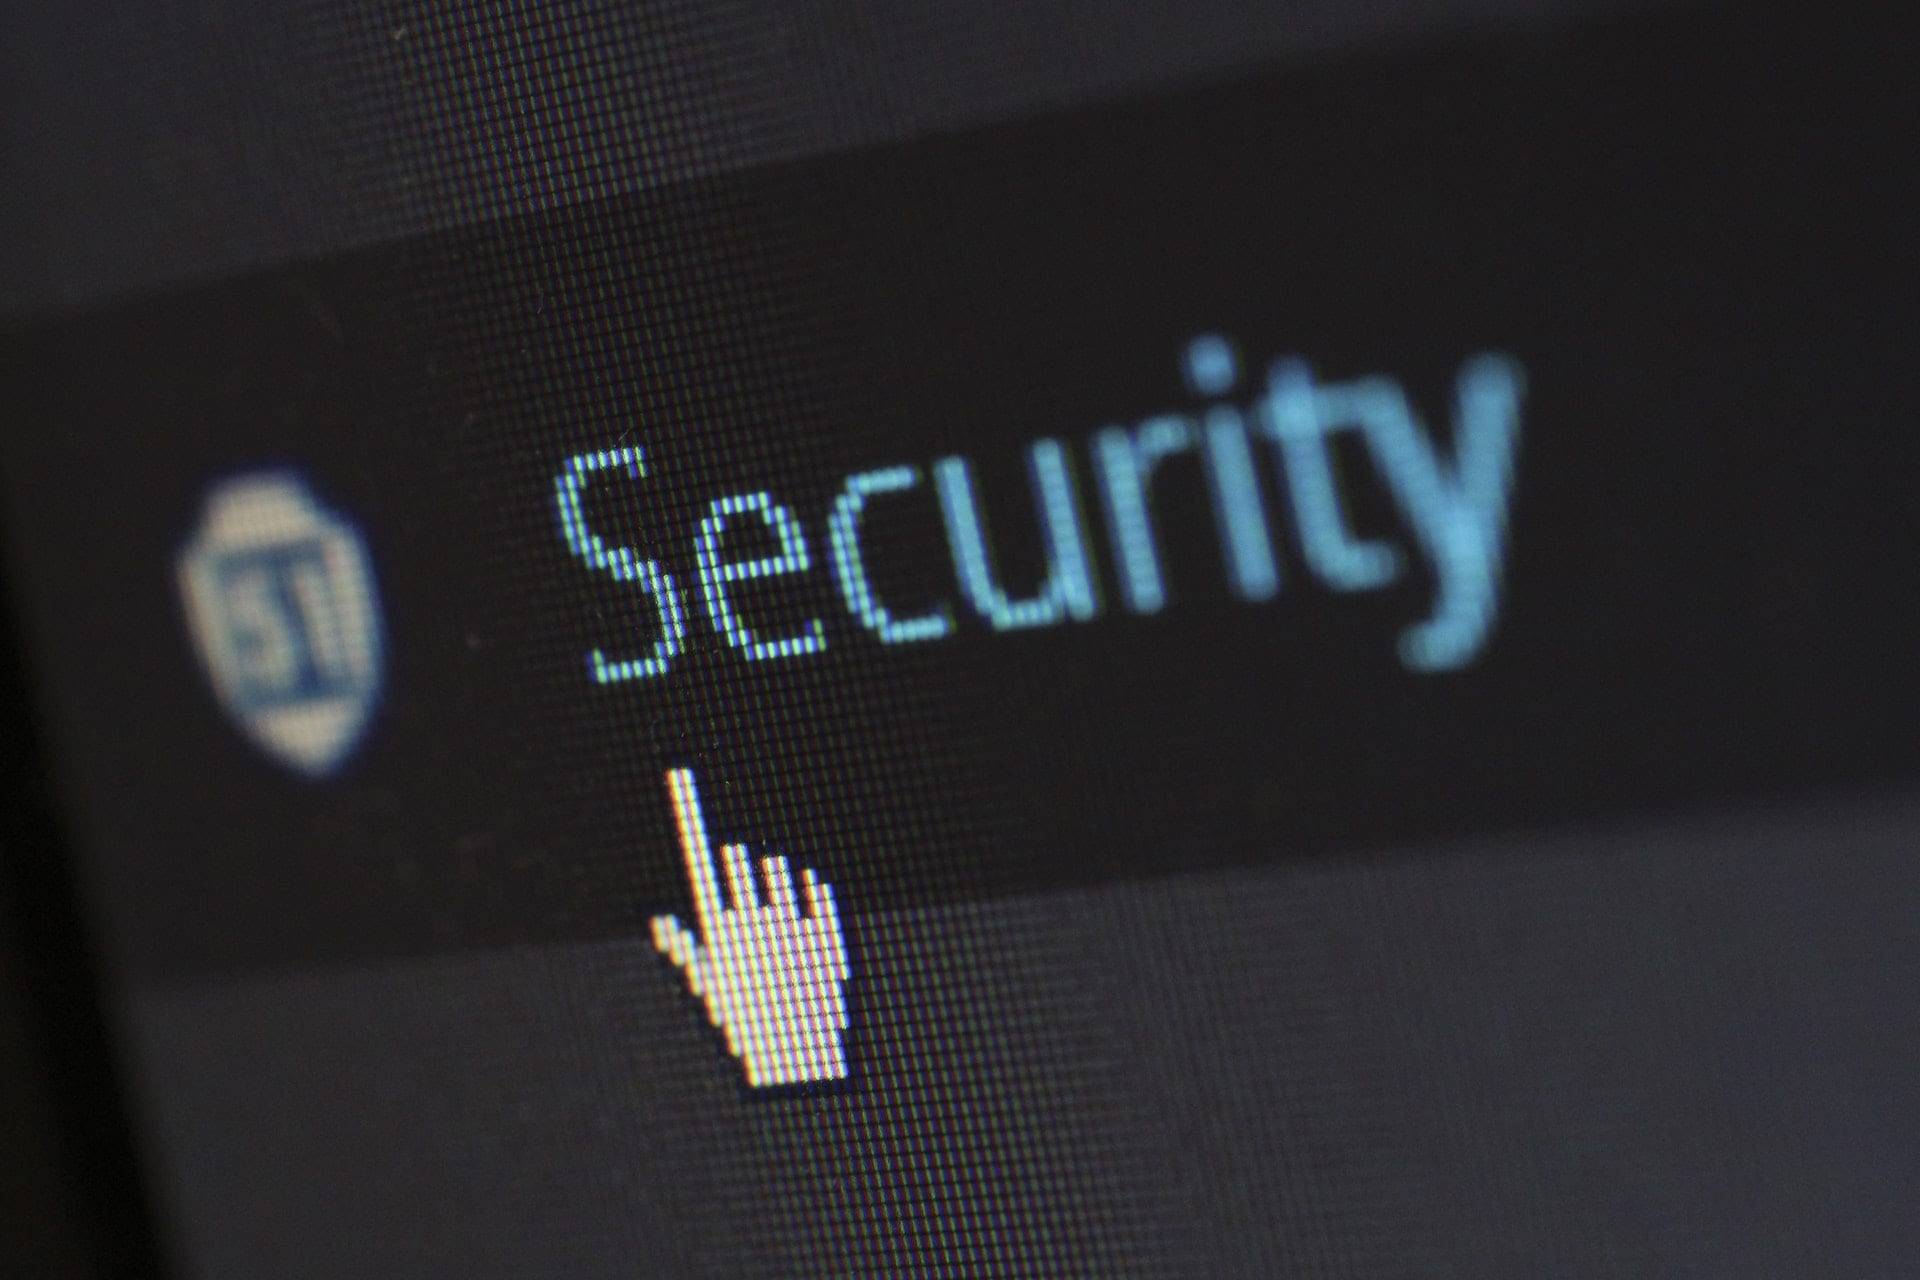 website screen security protection